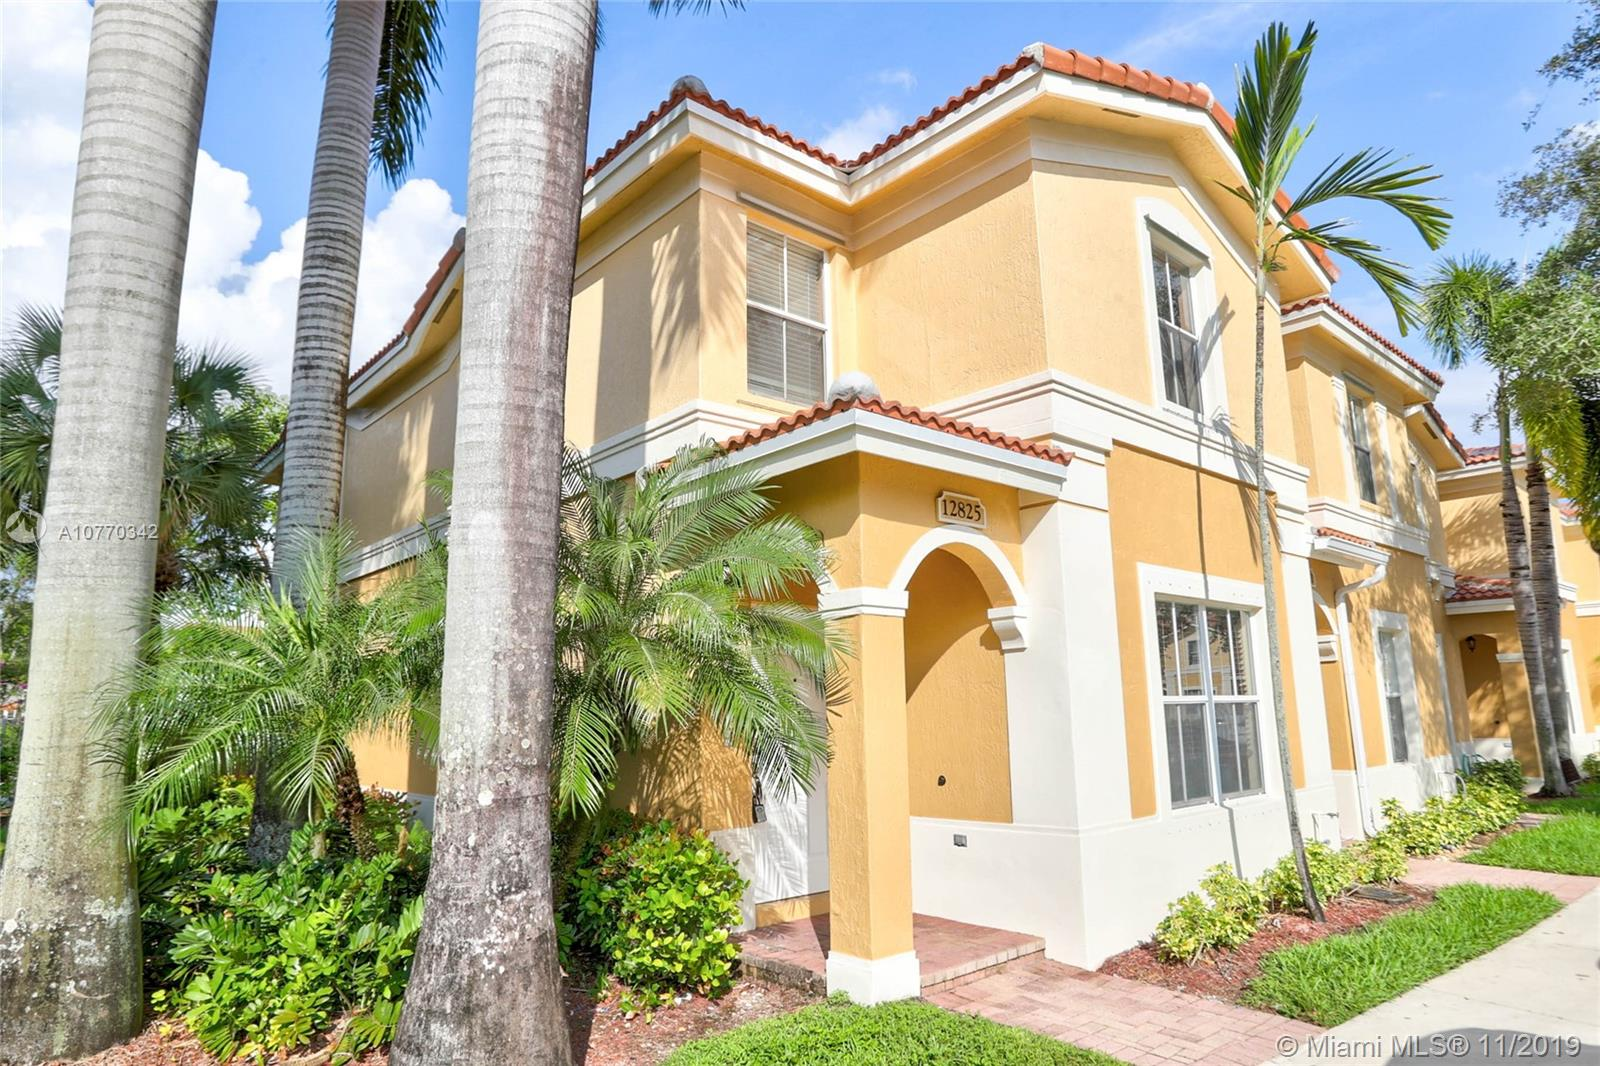 12825 S W 30th #107 For Sale A10770342, FL